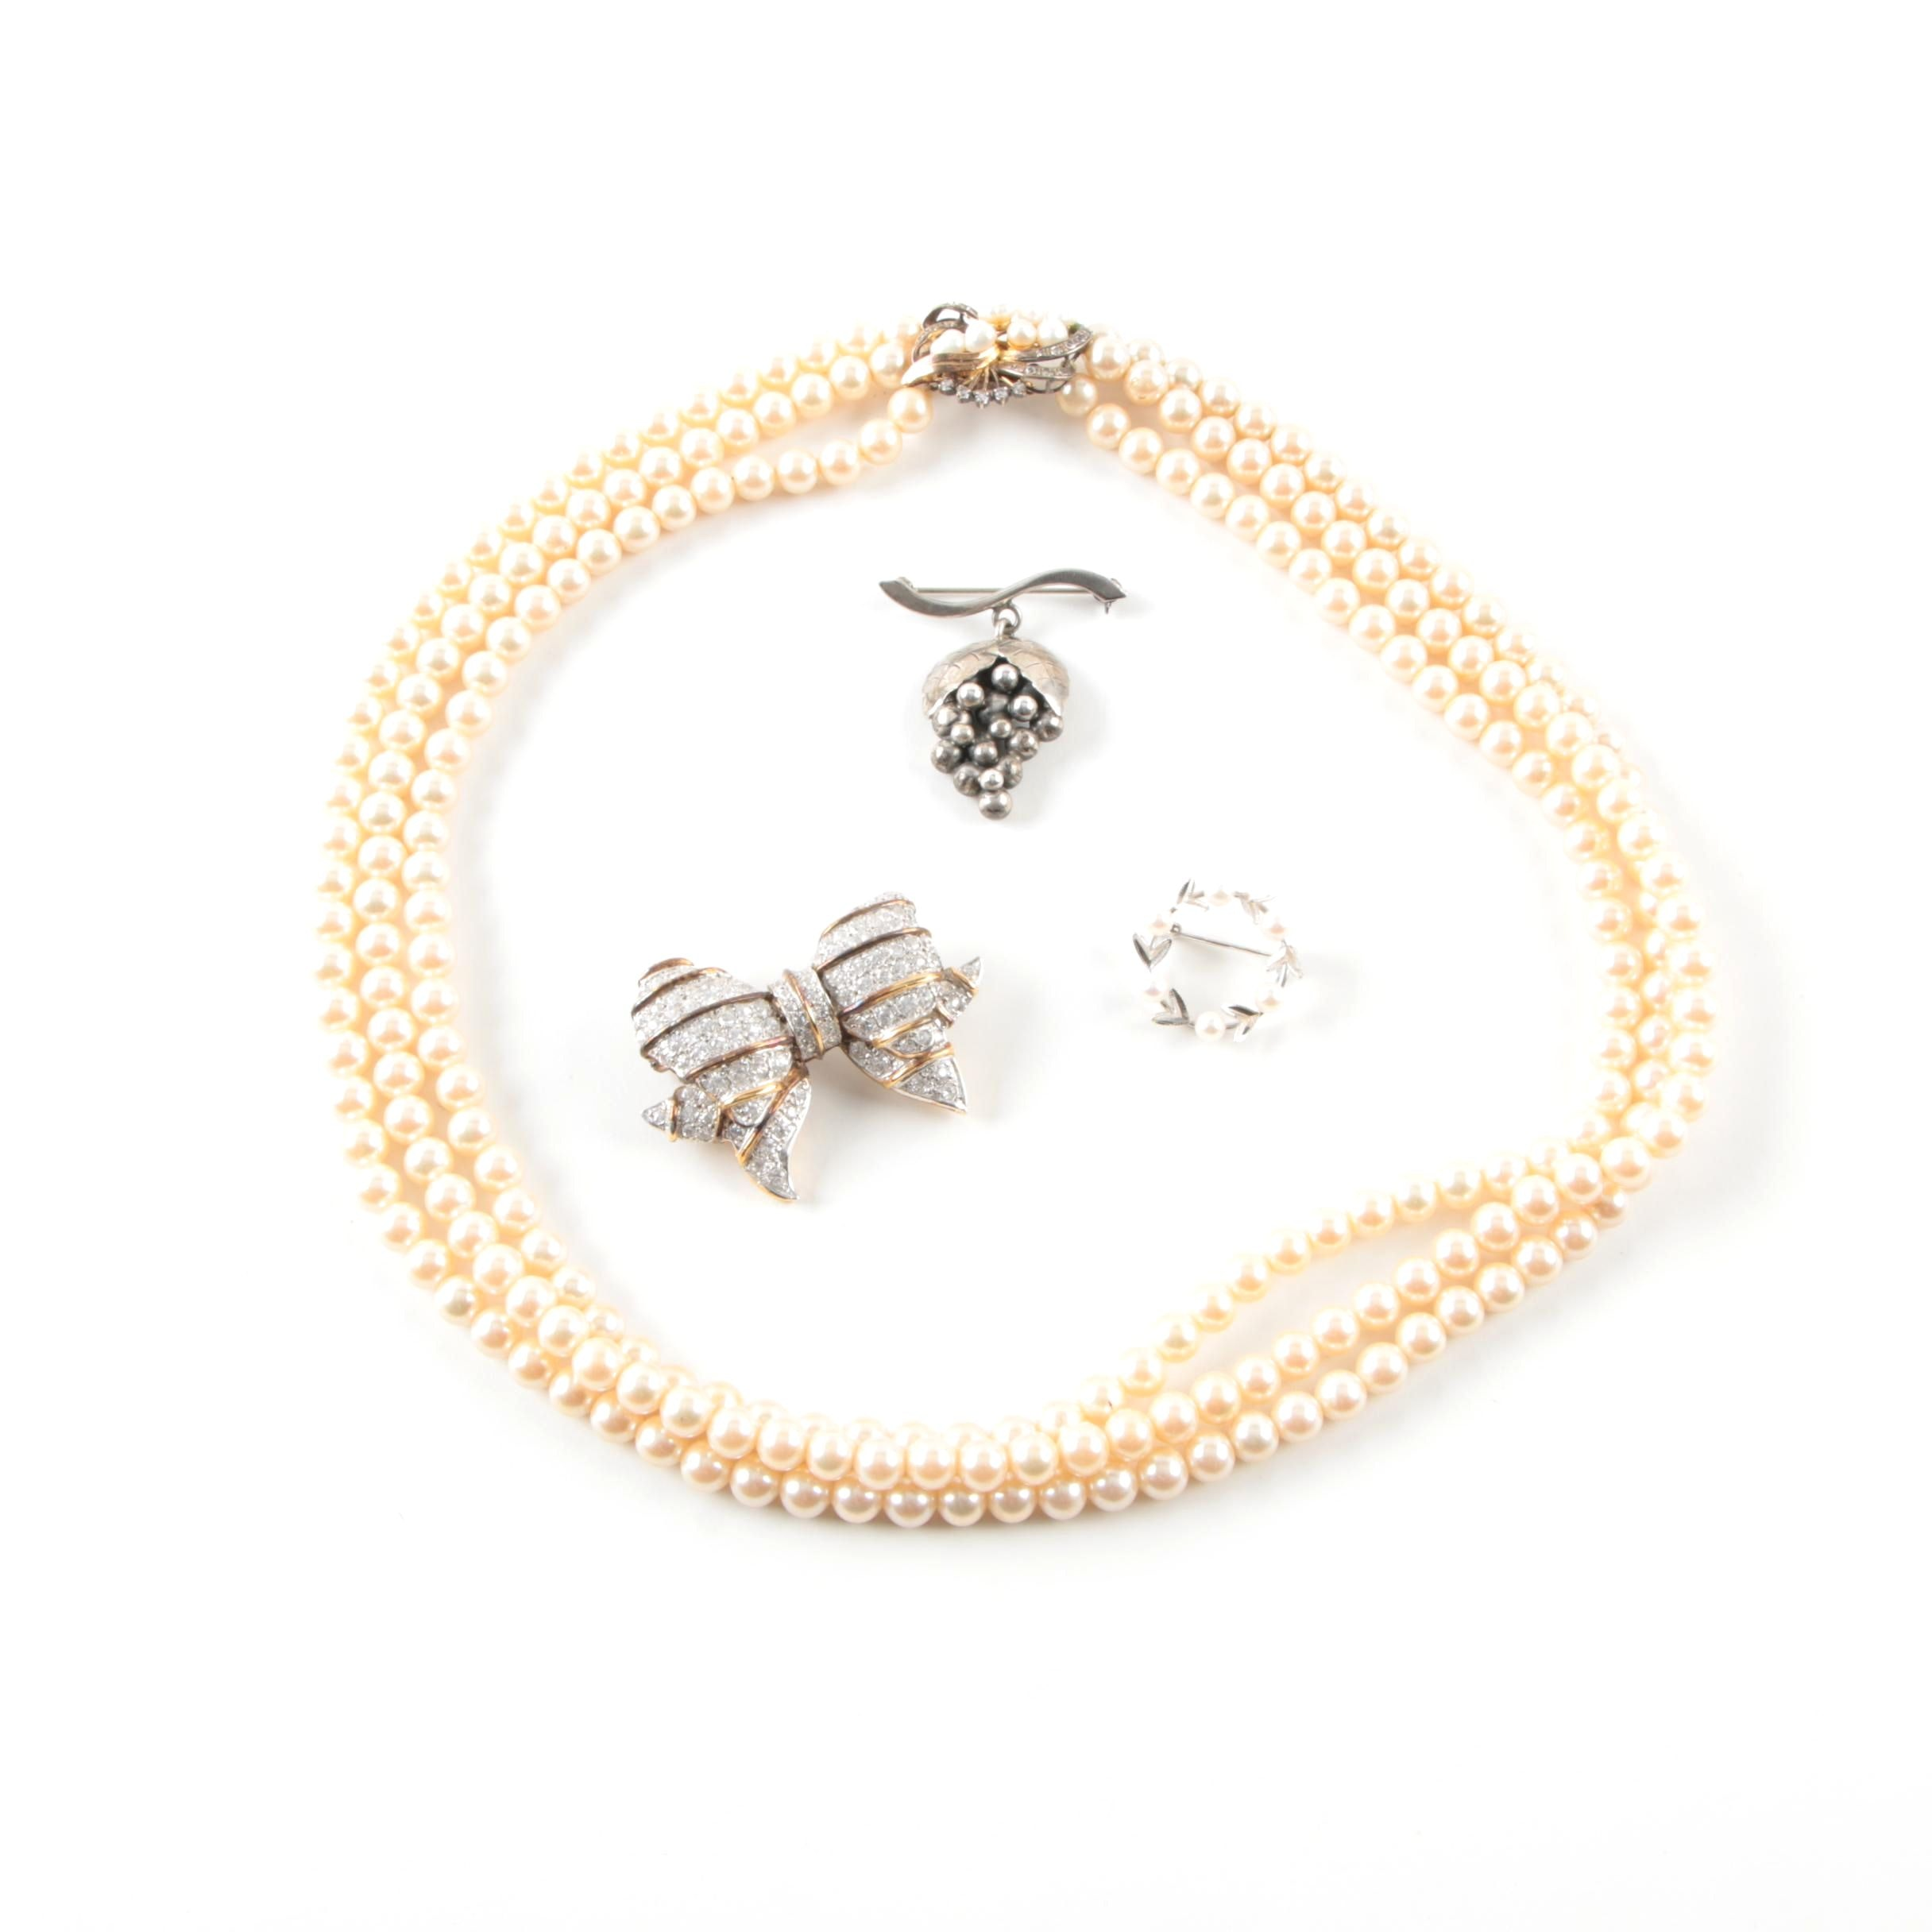 Assorted Cultured Pearl, Imitation Pearl and Glass Crystal Necklace and Brooches